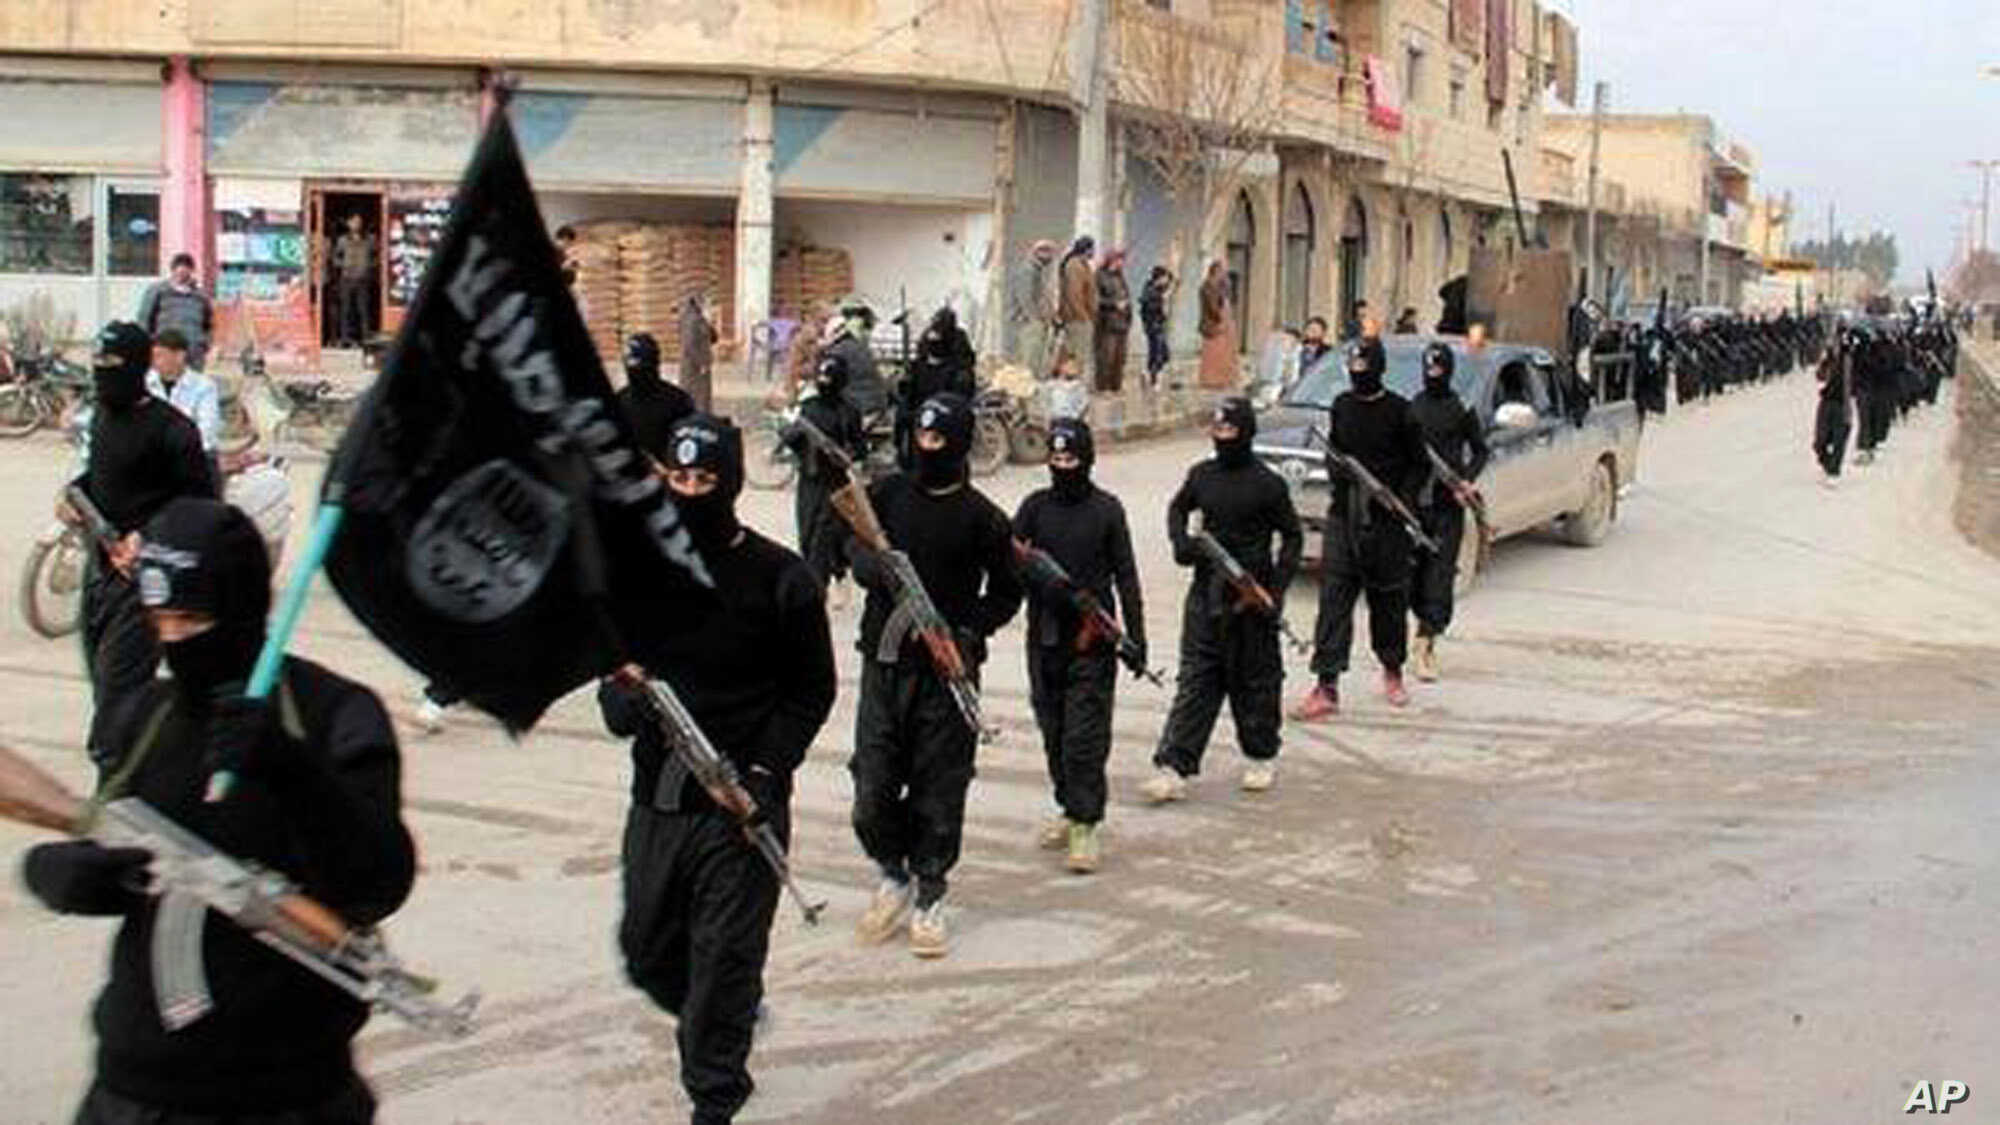 FILE - undated image posted on a militant website shows fighters from the al-Qaida linked Islamic State of Iraq and the Levant (ISIL) marching in Raqqa, Syria.